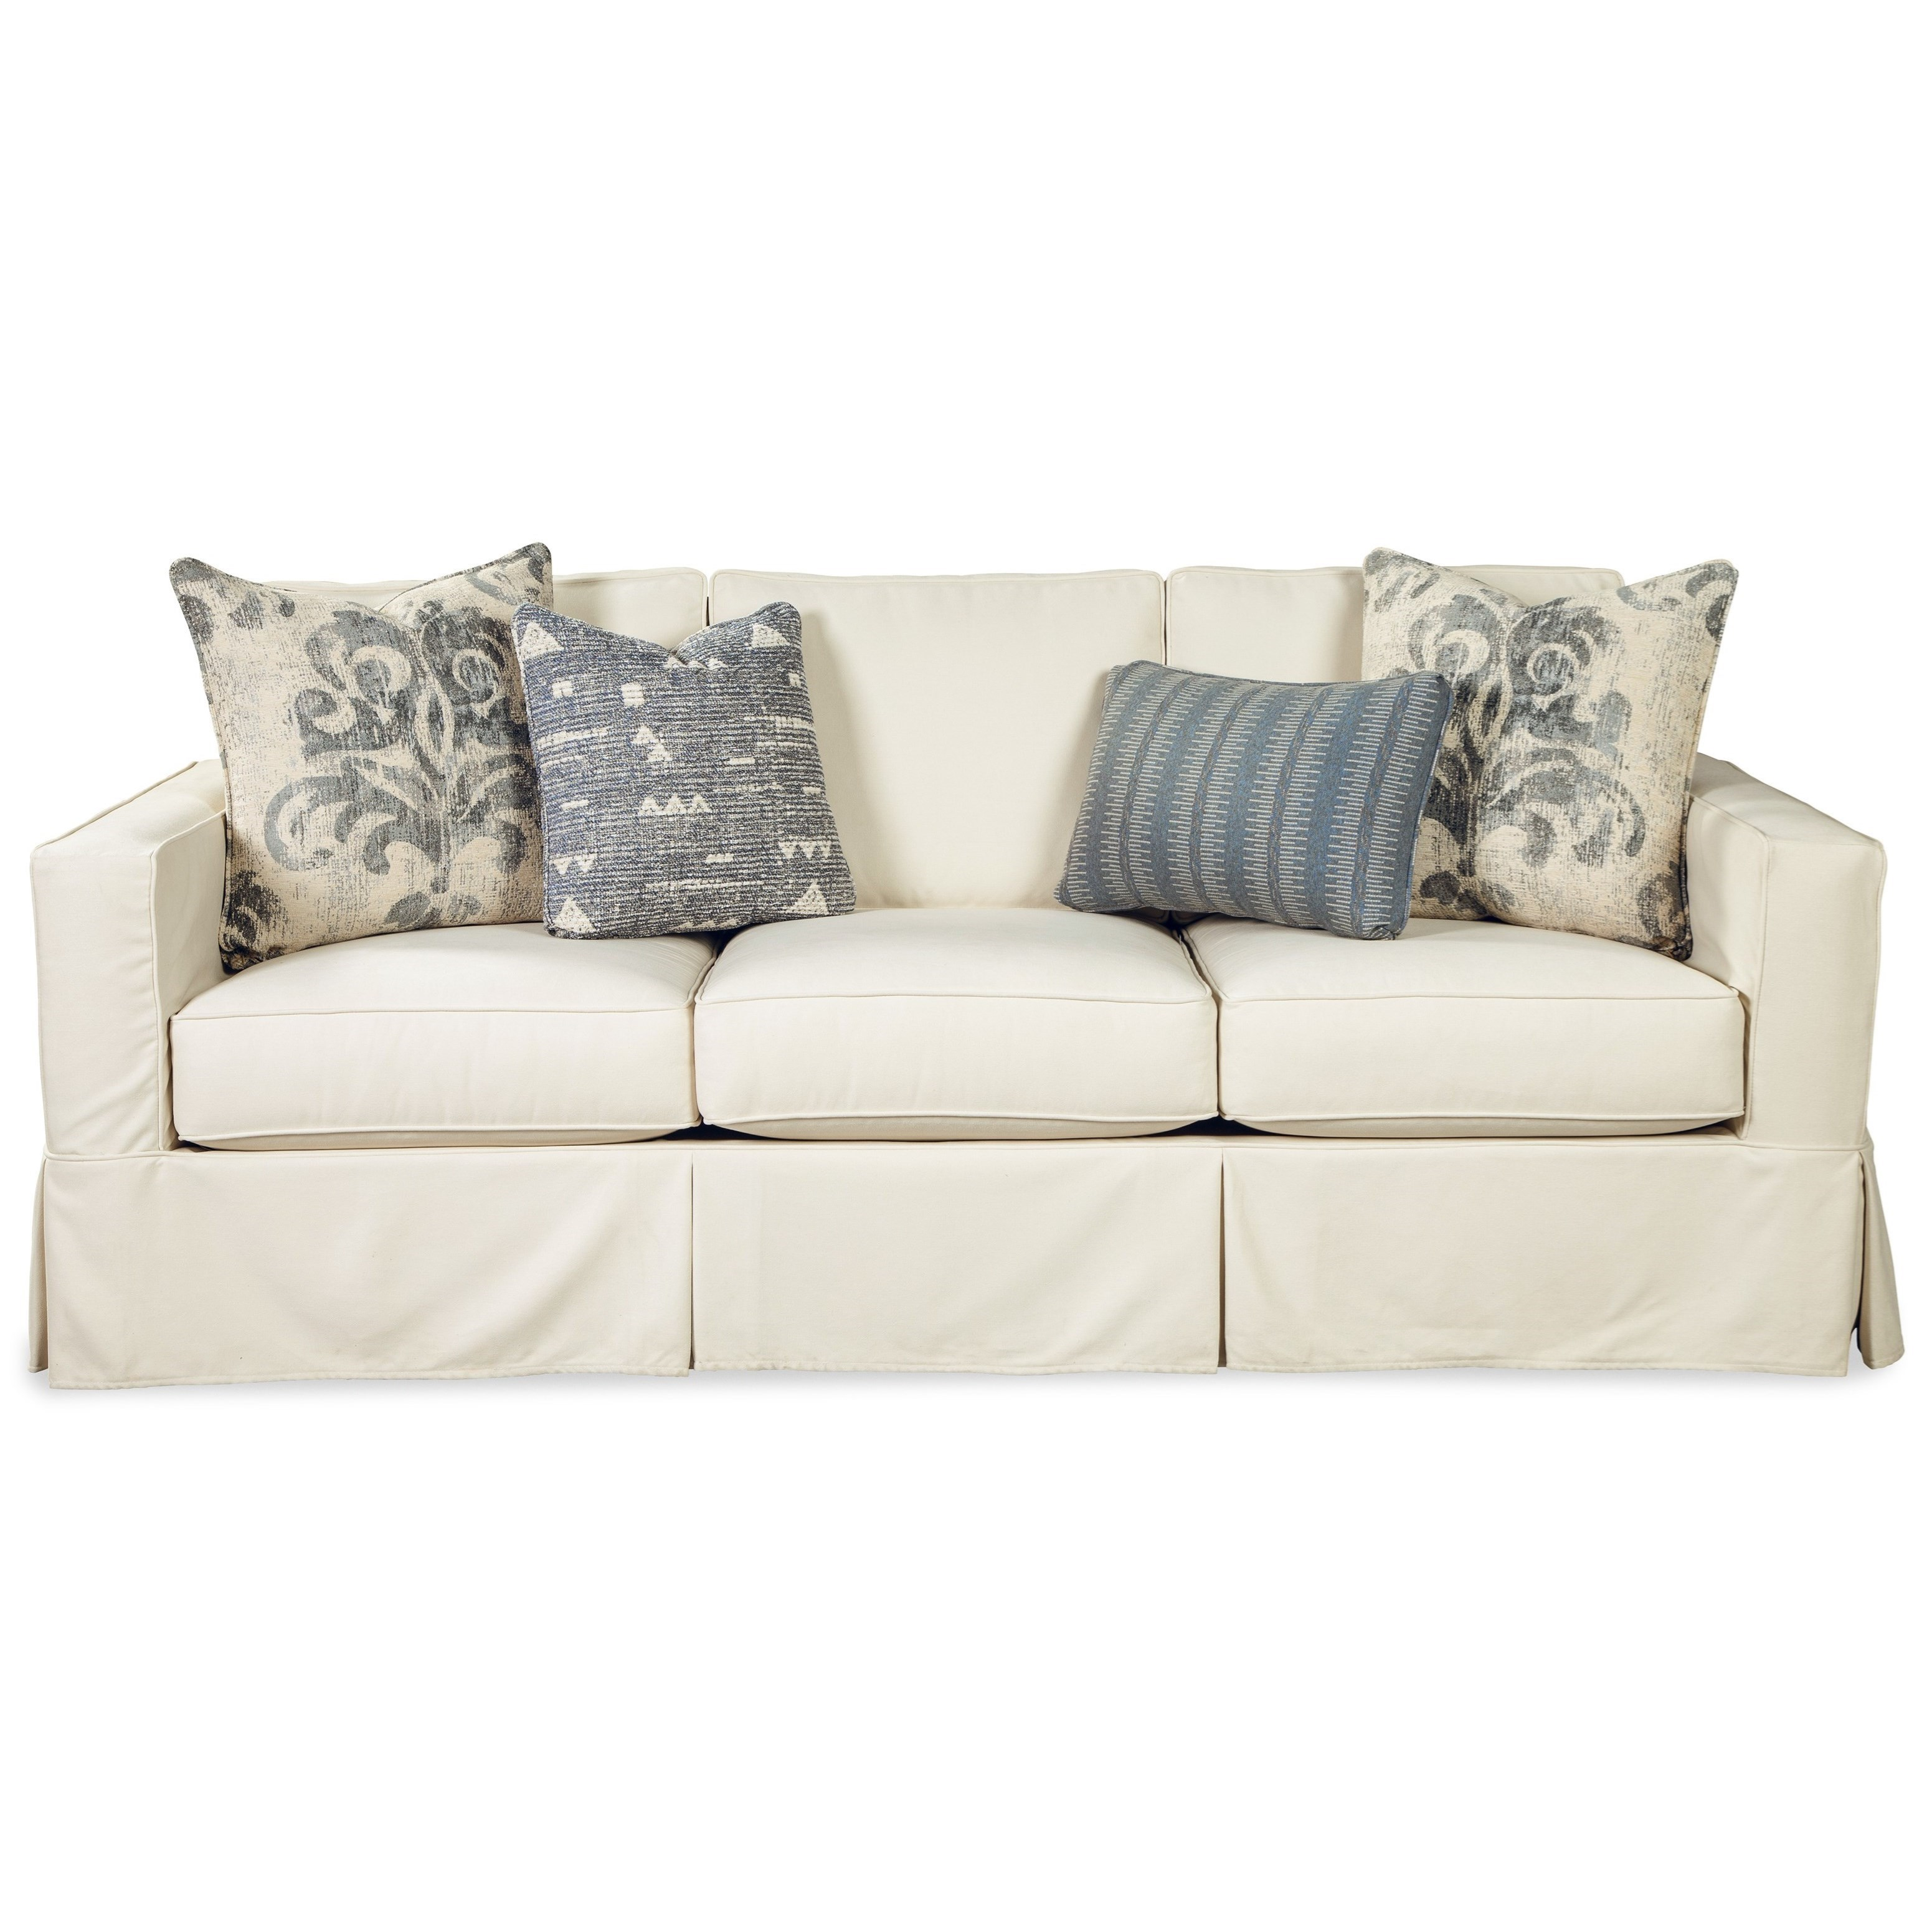 Vintage Skirted Slipcover Sofa with Queen Size Memory Foam Sleeper